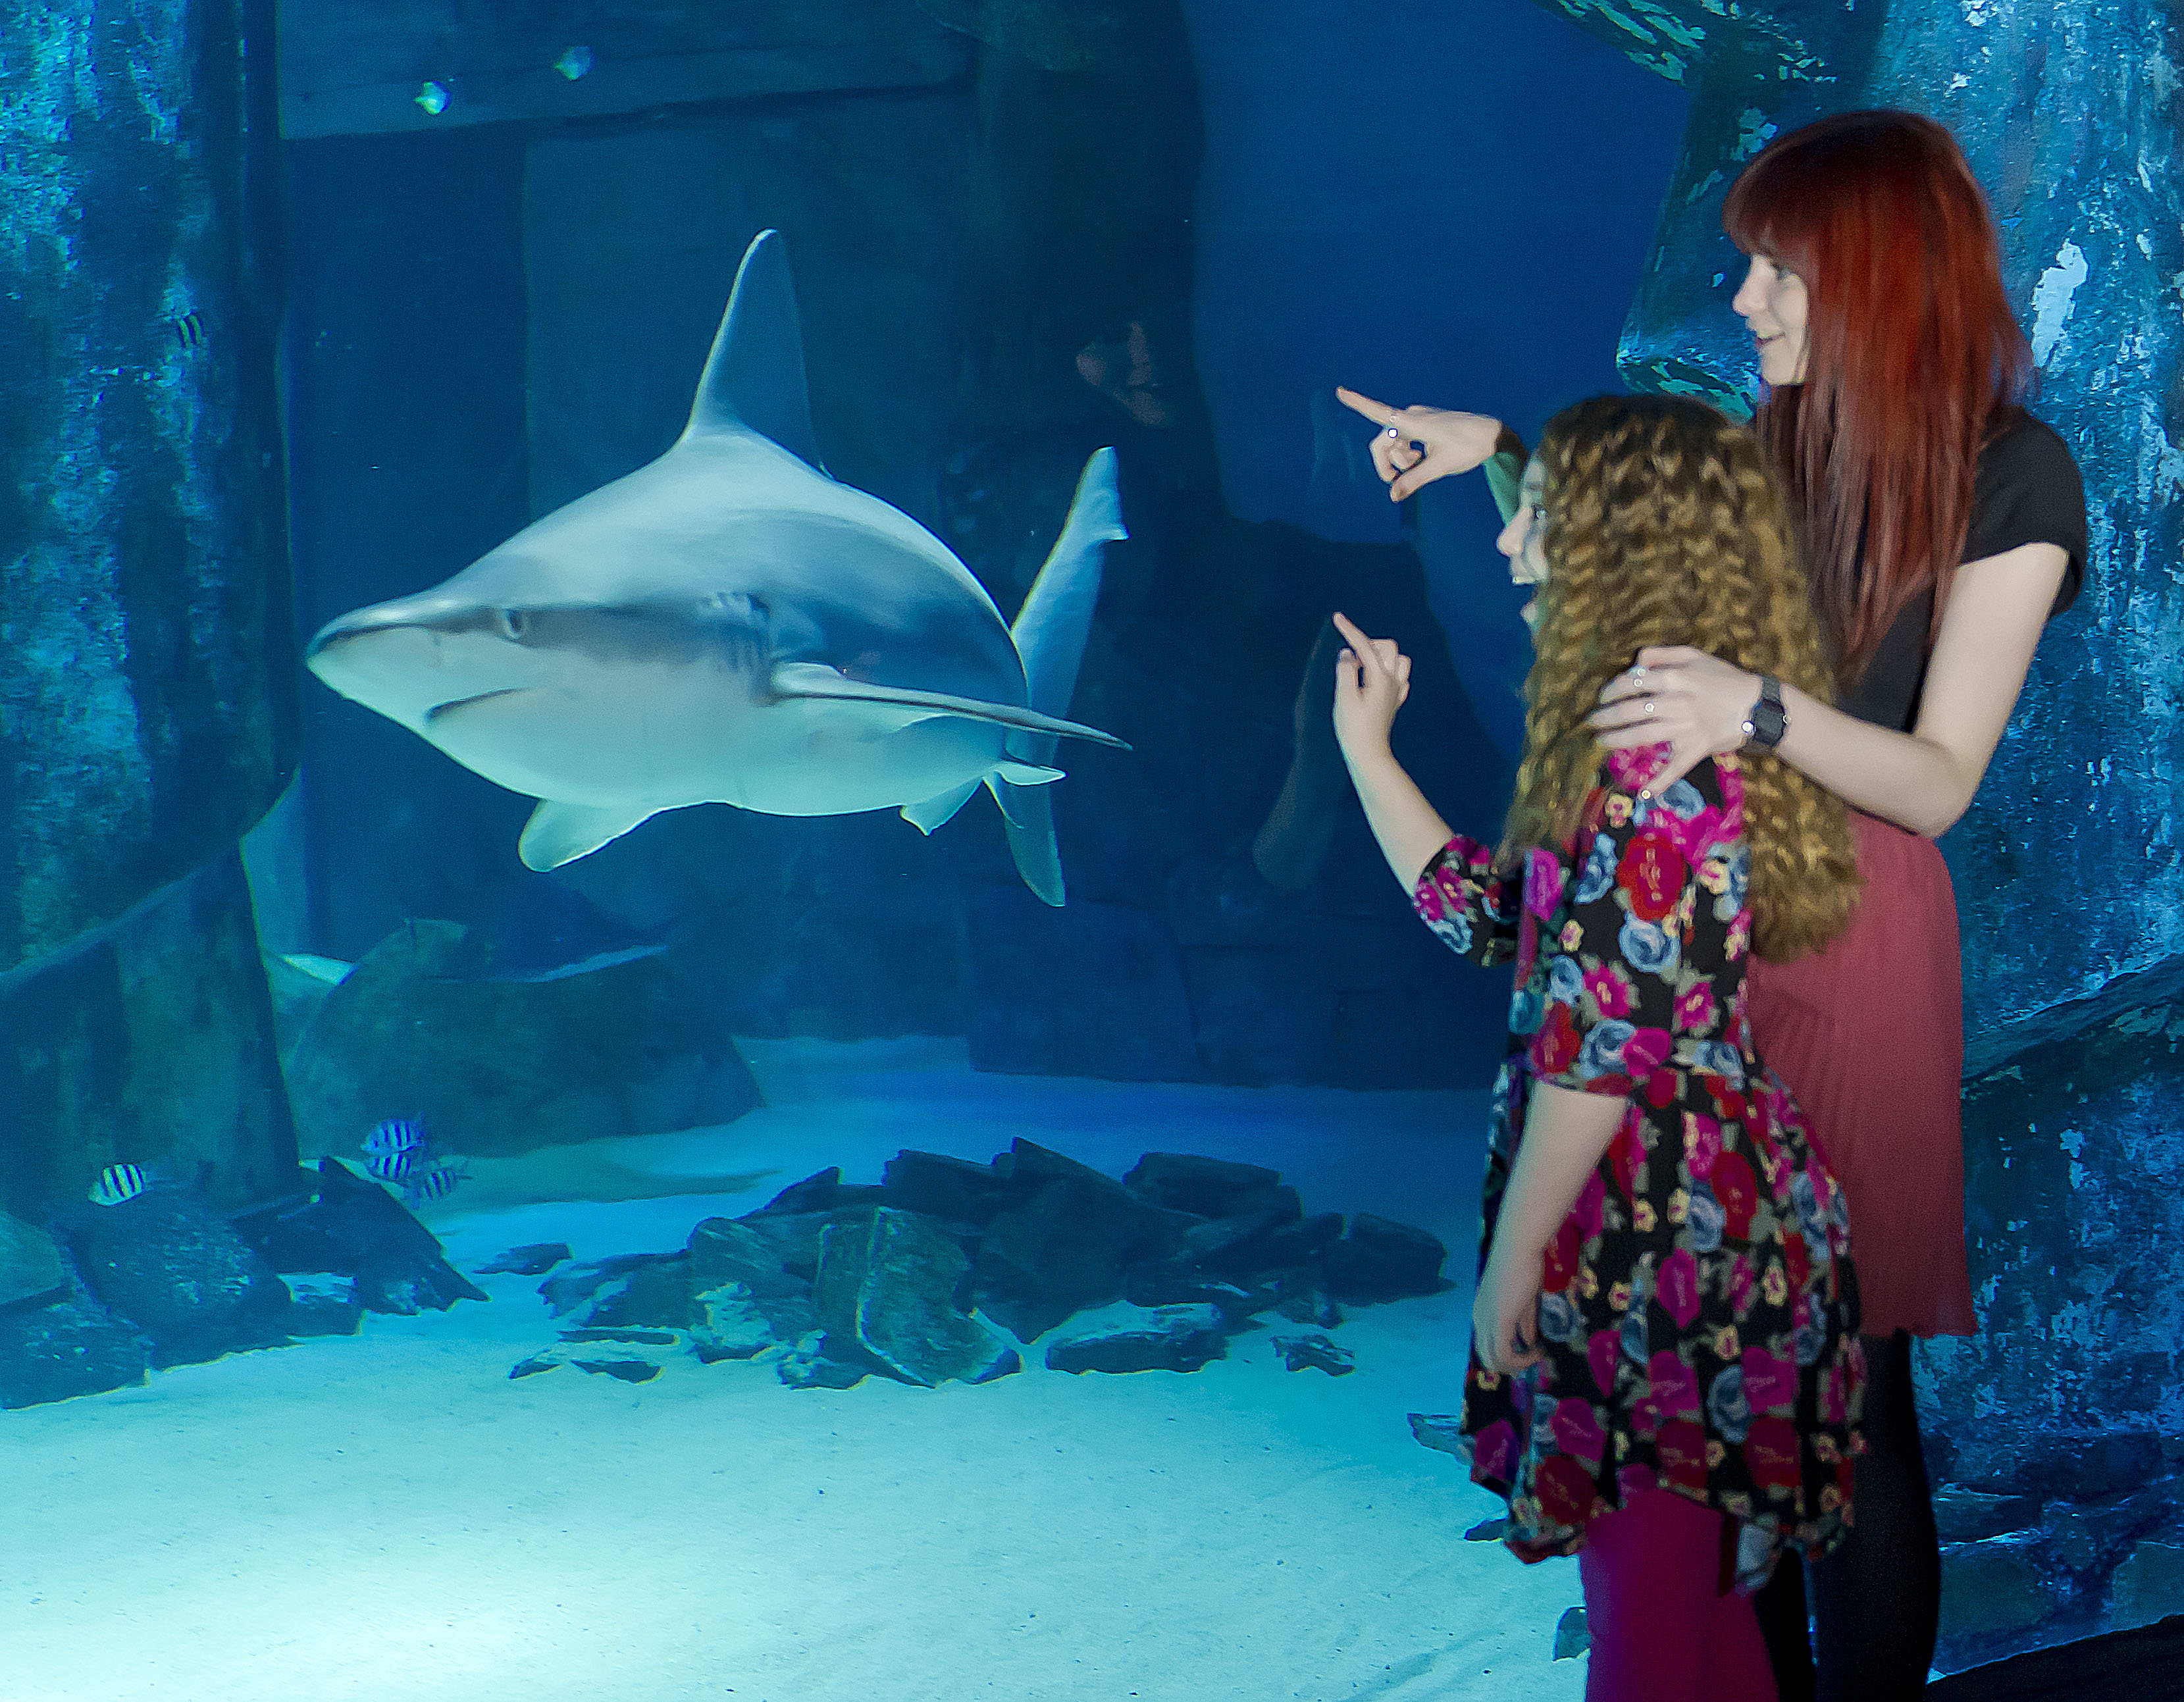 Buy fish for aquarium london - A Day Out At The London Aquarium And The London Eye